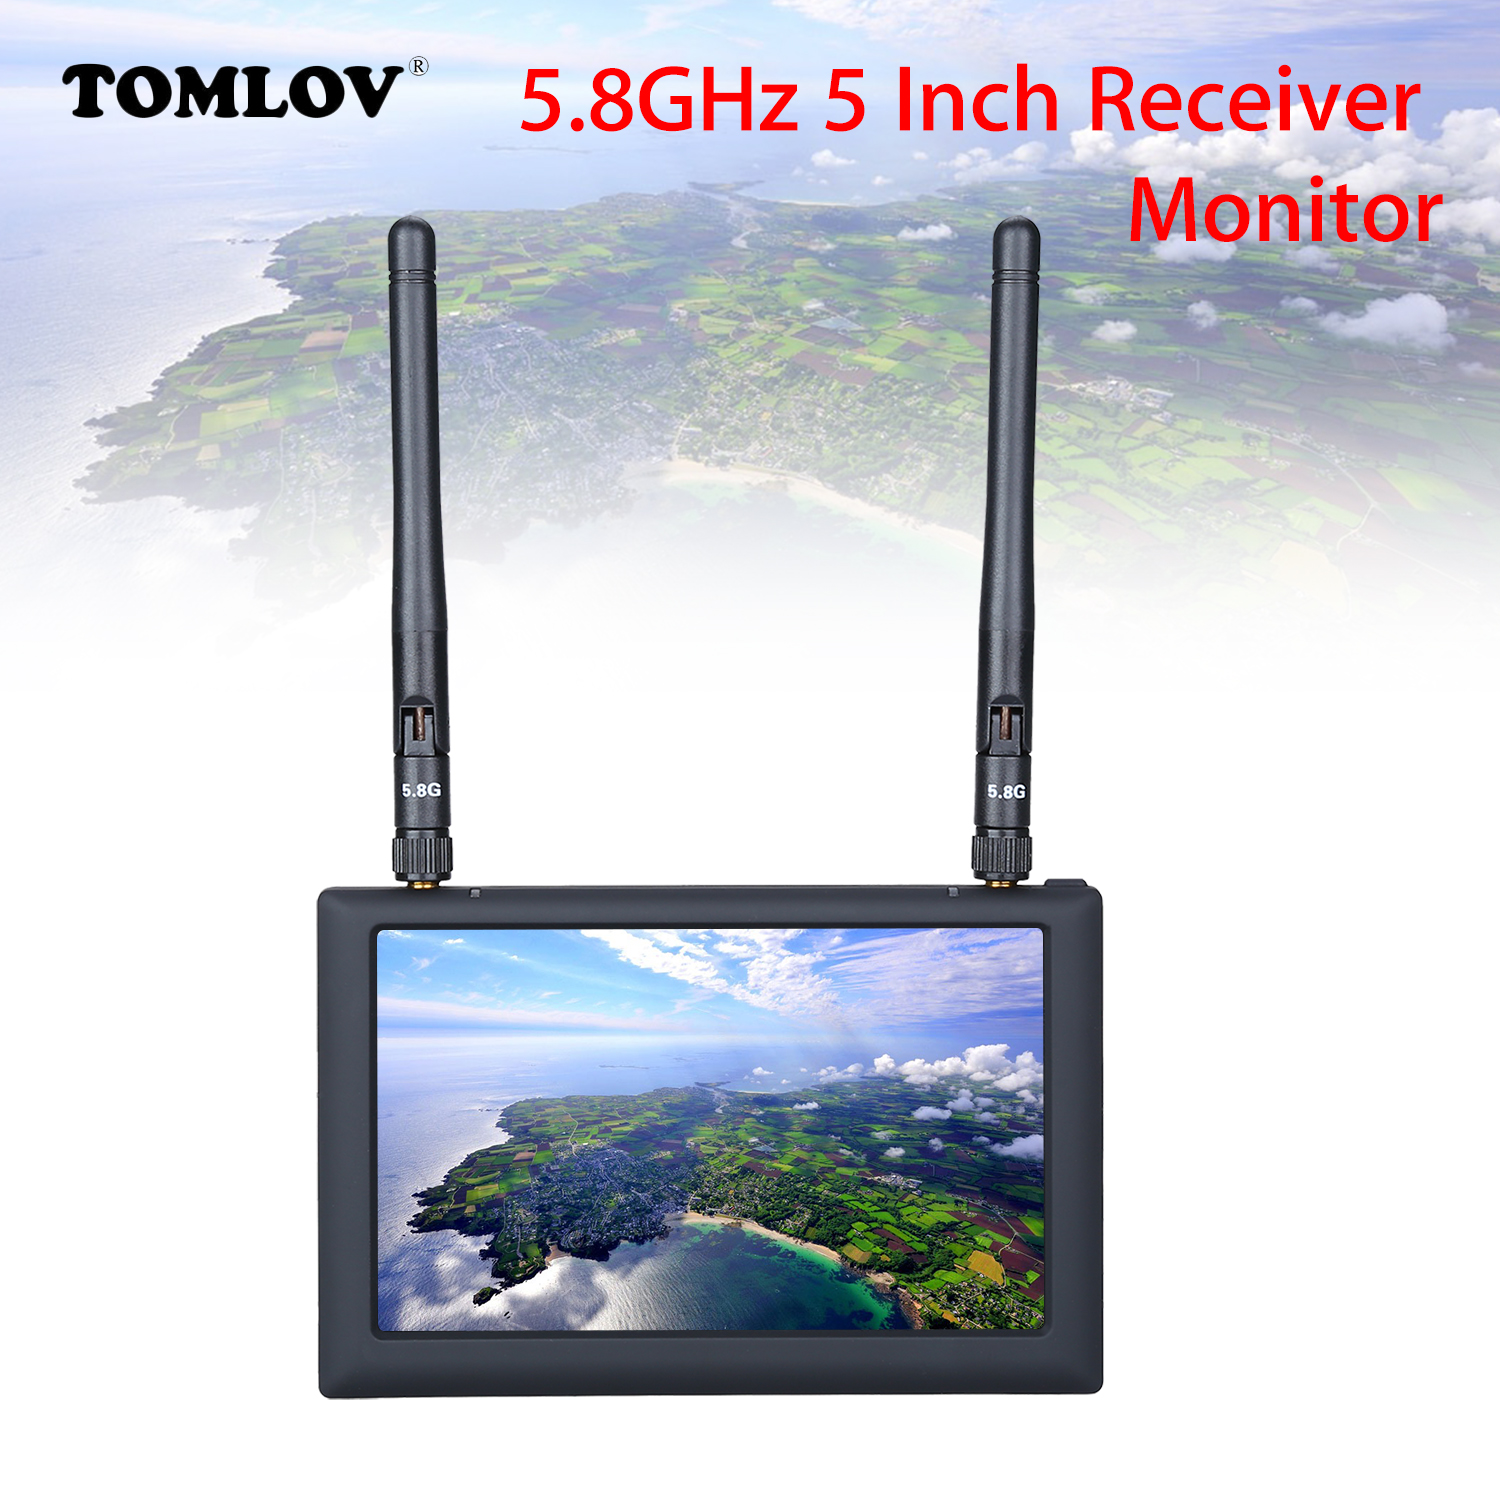 New Fx508 5.8ghz High Brightness 5 Lcd Fpv Monitor Diversity Receiver With Dvr Function 800x480 Pixels 40ch For Rc Quadcopter Parts & Accessories Remote Control Toys